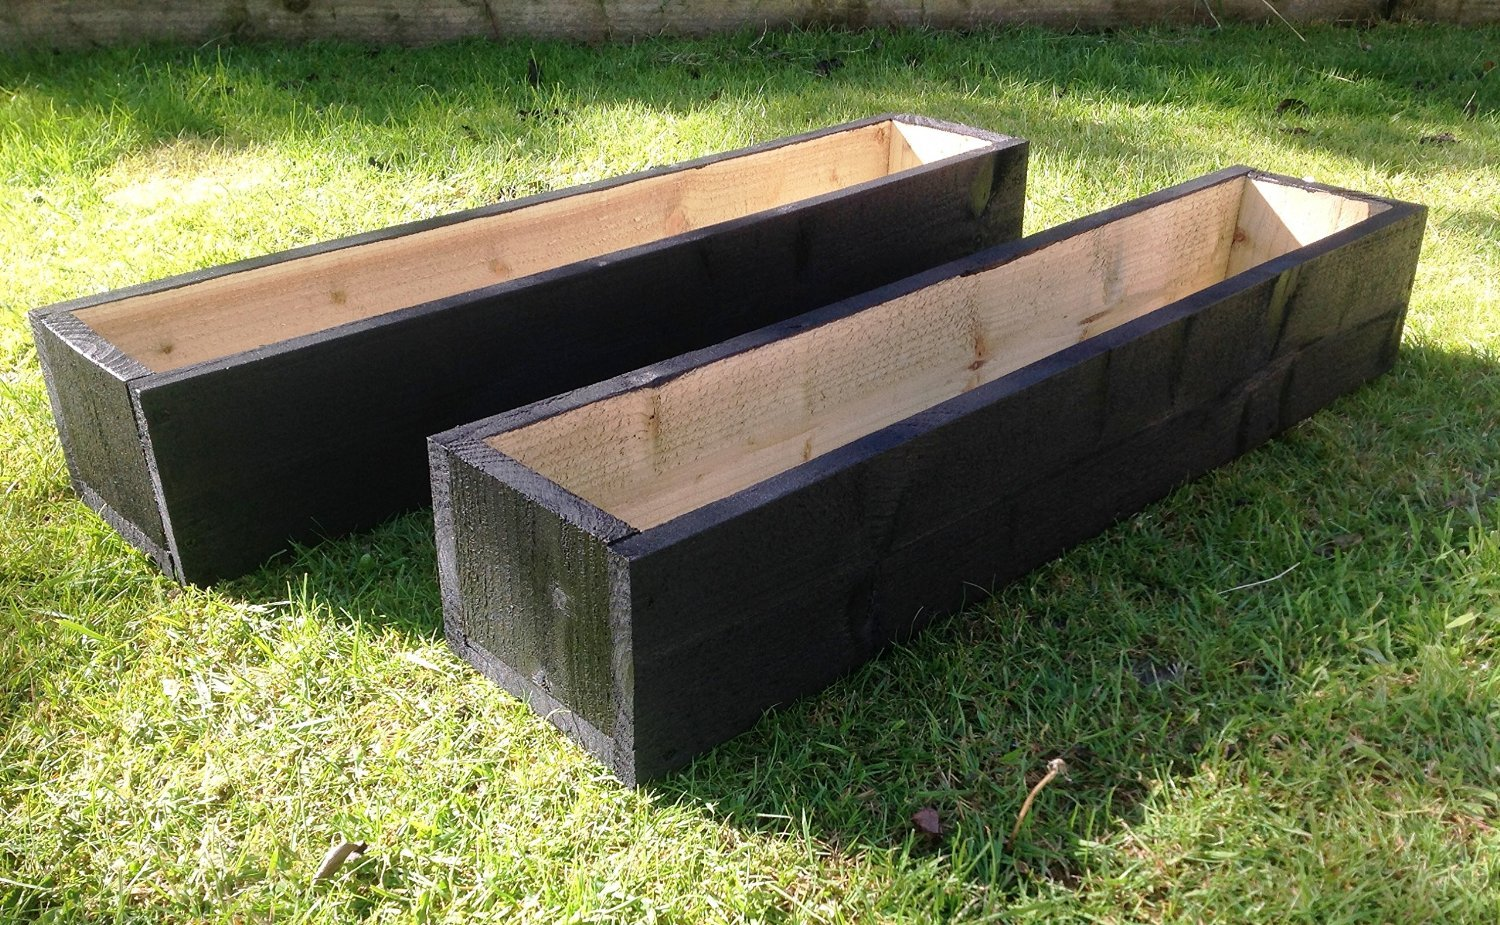 2 x 150cm Long Wooden Garden Planters - Painted Black: Fully Assembled - Just add plants: Fast & Free Delivery Home & Garden Designs